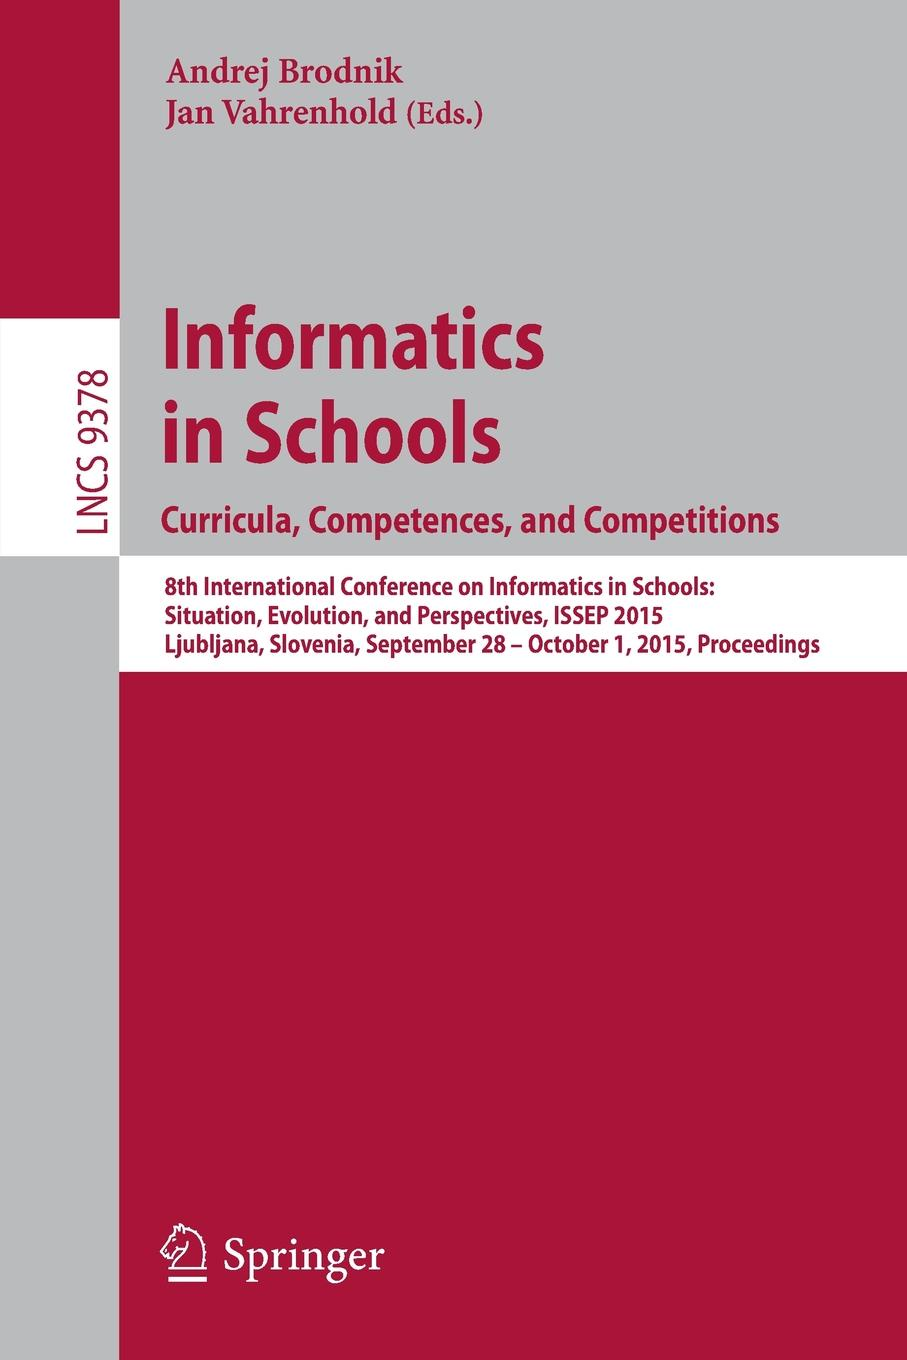 Informatics in Schools. Curricula, Competences, and Competitions. 8th International Conference on Informatics in Schools: Situation, Evolution, and Perspectives, ISSEP 2015, Ljubljana, Slovenia, September 28 - October 1, 2015, Proceedings christian blum metaheuristics for string problems in bio informatics